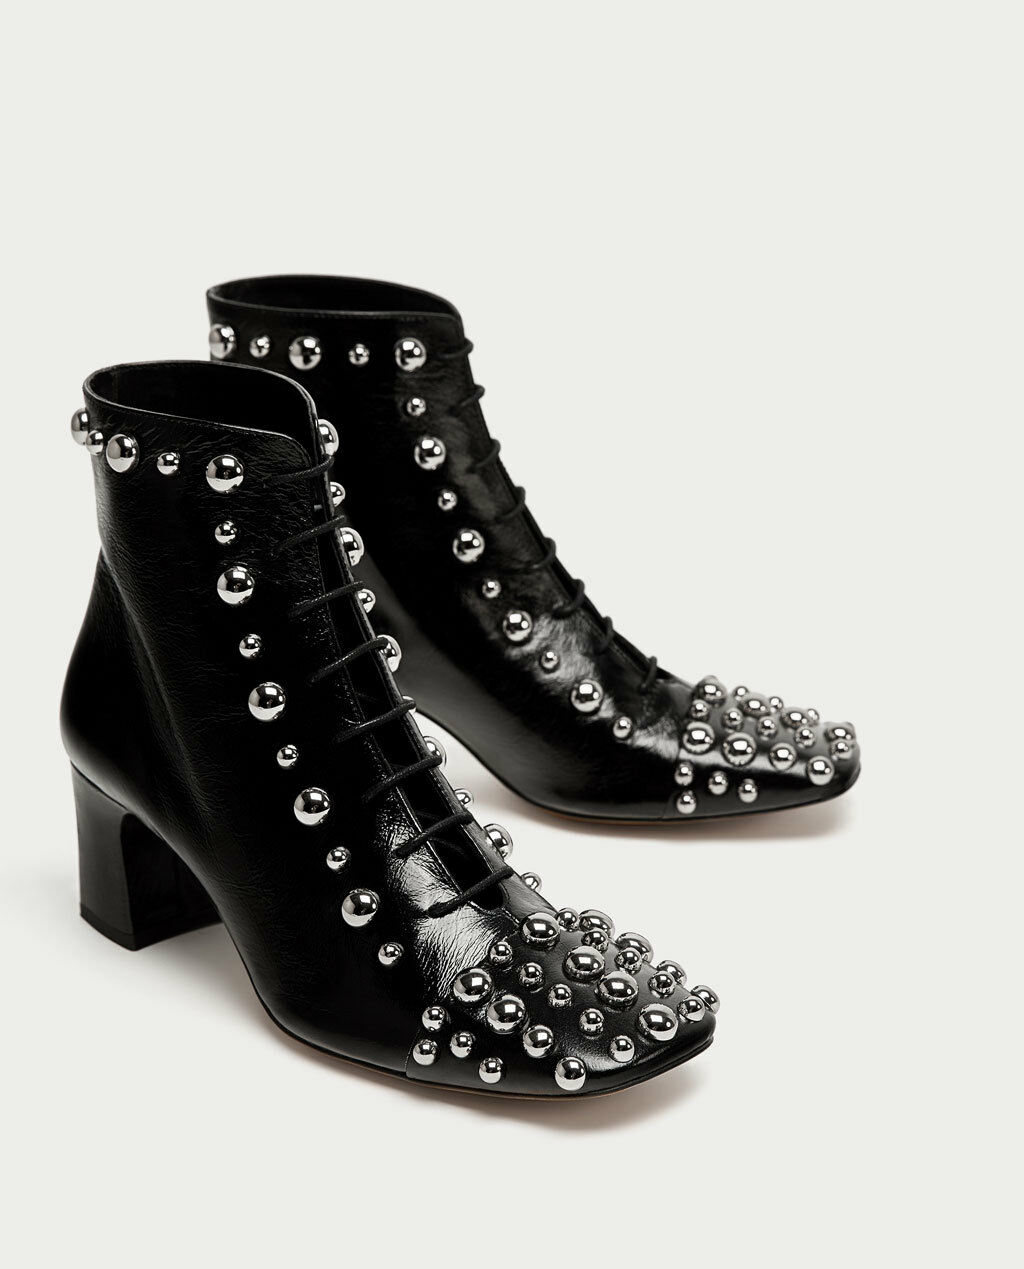 ZARA AW17 HIGH HEEL LEATHER ANKLE BOOTS WITH STUDS BLACK ALL SIZES REF. 6088/201